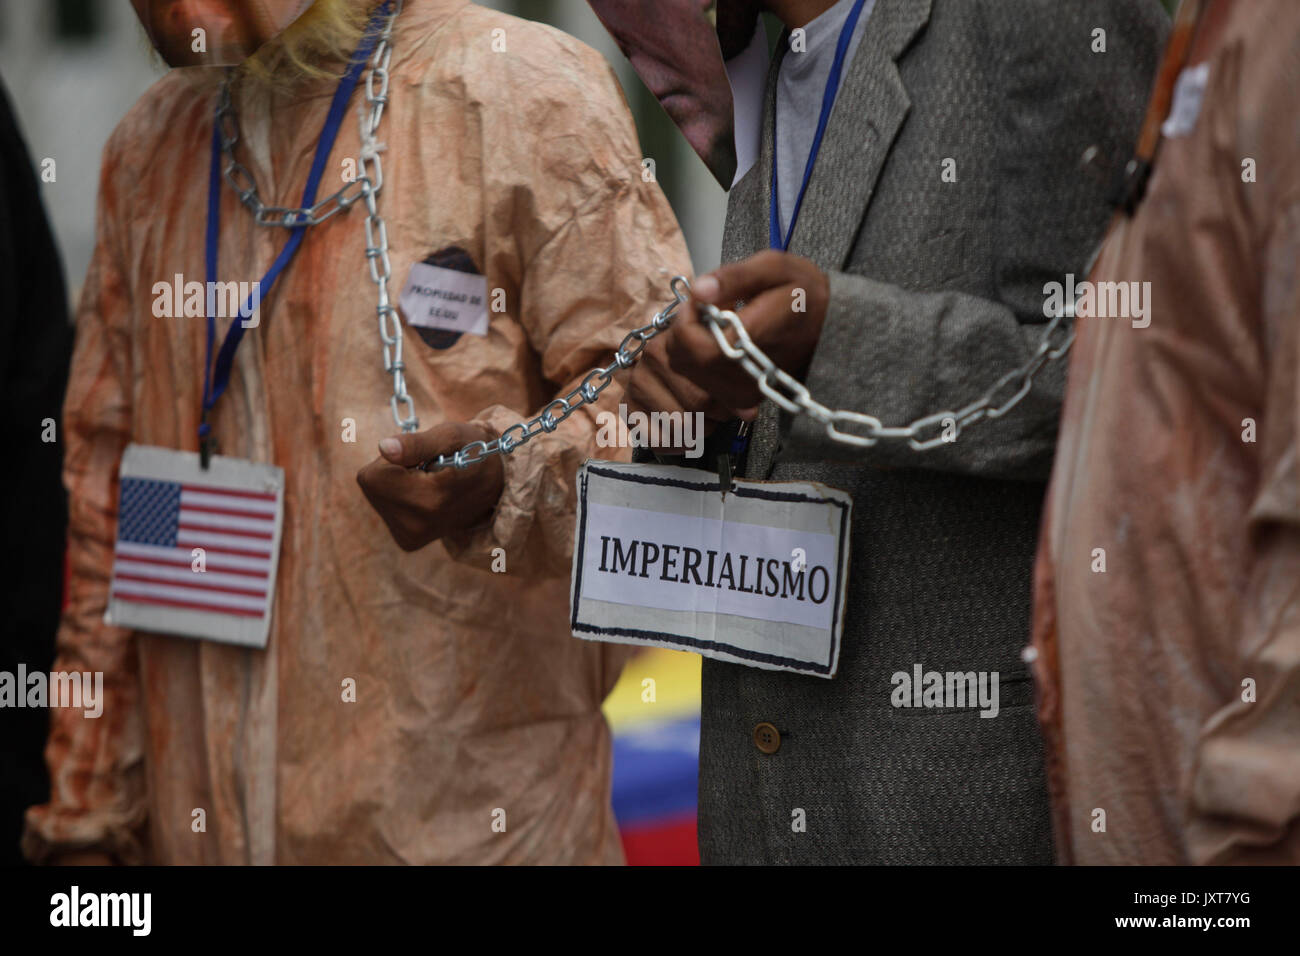 Panama City, Panama. 17th Aug, 2017. A view of a sign that reads 'Imperialism' during a protest against the visit of US Vice President Mike Pence in Panama City, Panama, 17 August 2017. Pence is in Panama fot the last stop of his Latin American tour. Credit: EFE News Agency/Alamy Live News - Stock Image